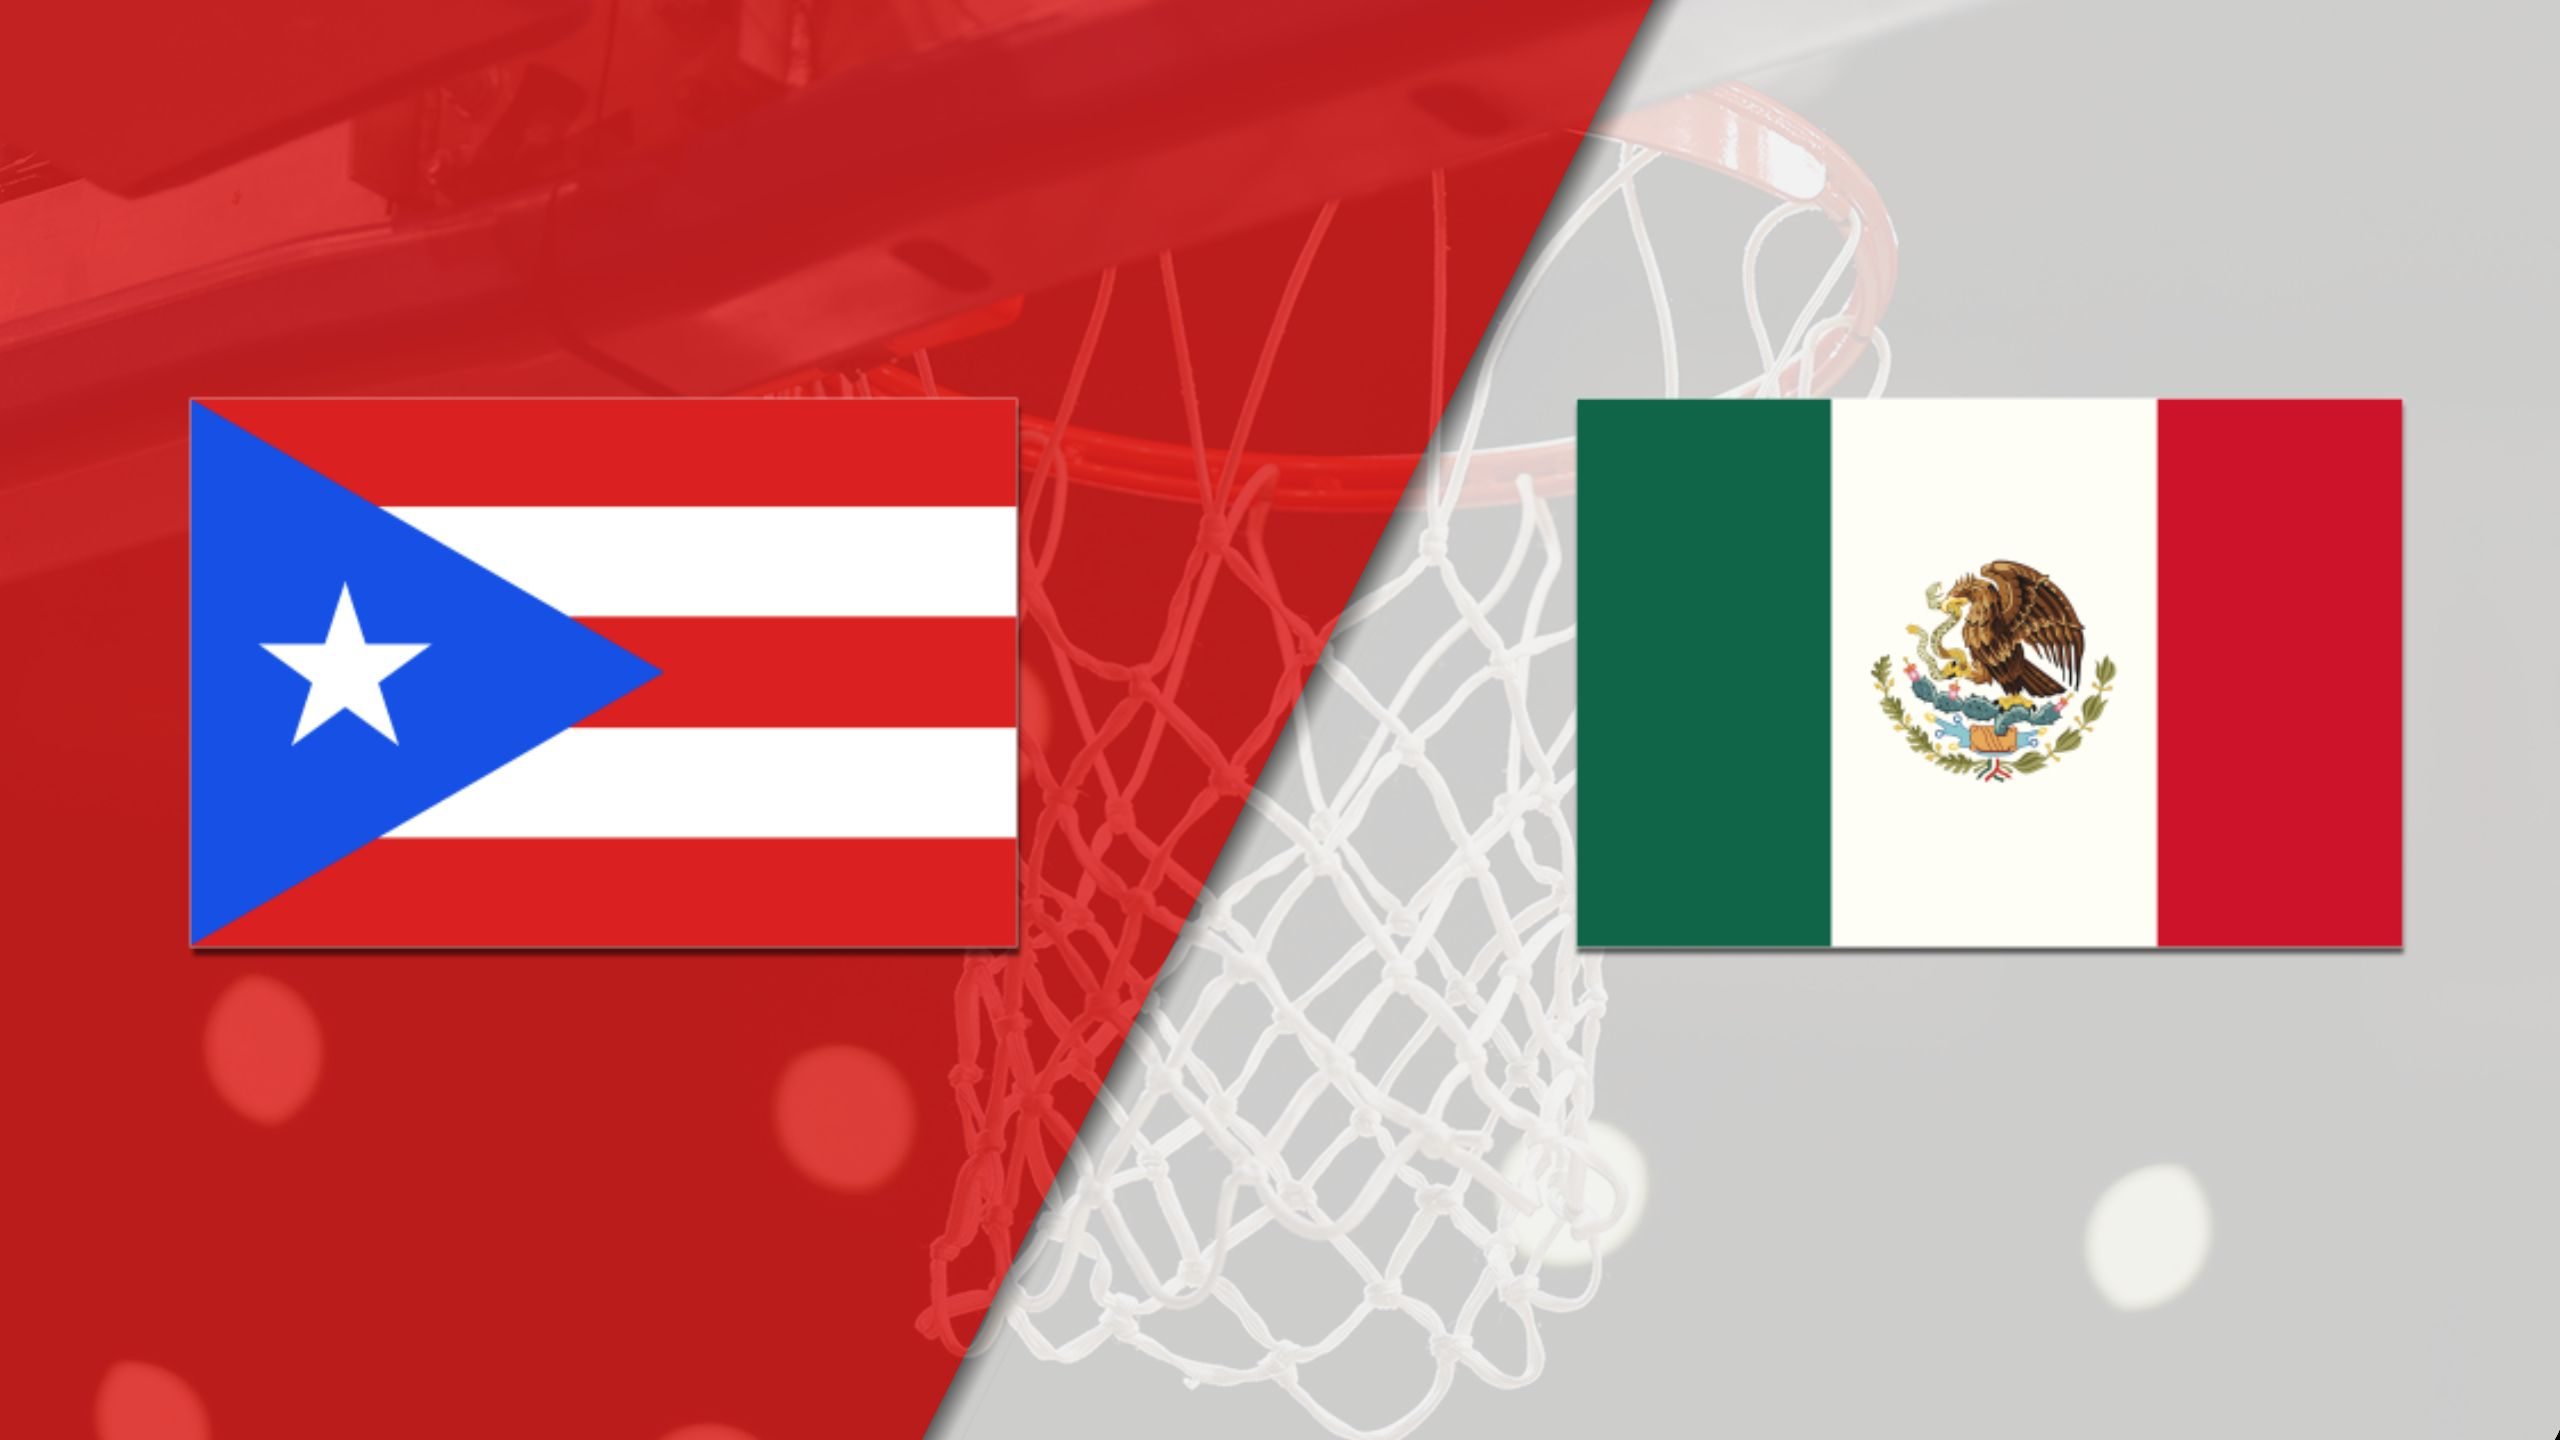 Puerto Rico vs. Mexico (FIBA World Cup 2019 Qualifier)